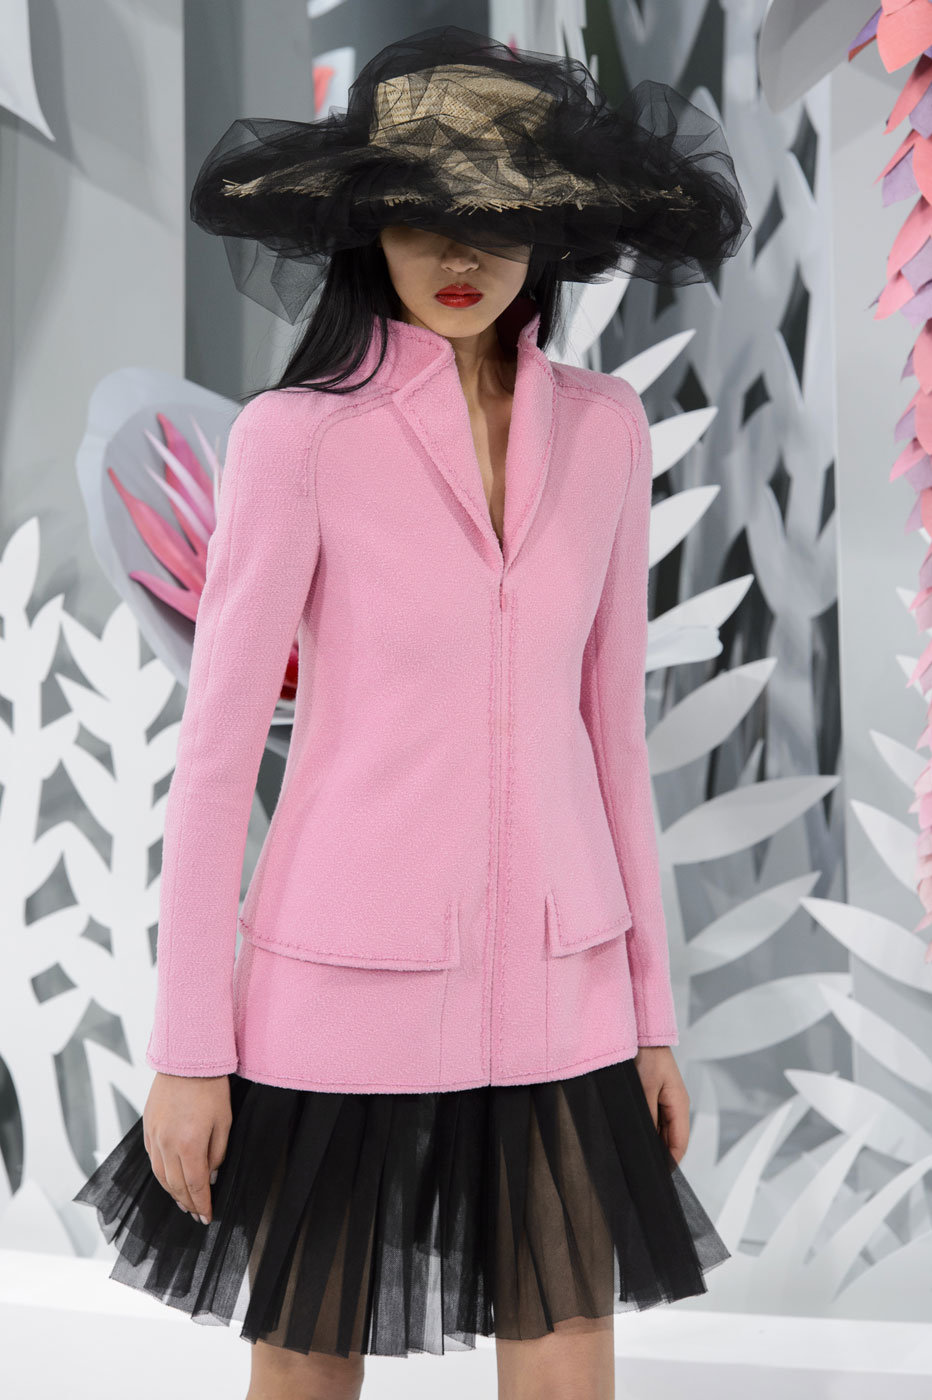 Chanel-fashion-runway-show-haute-couture-paris-spring-summer-2015-the-impression-016